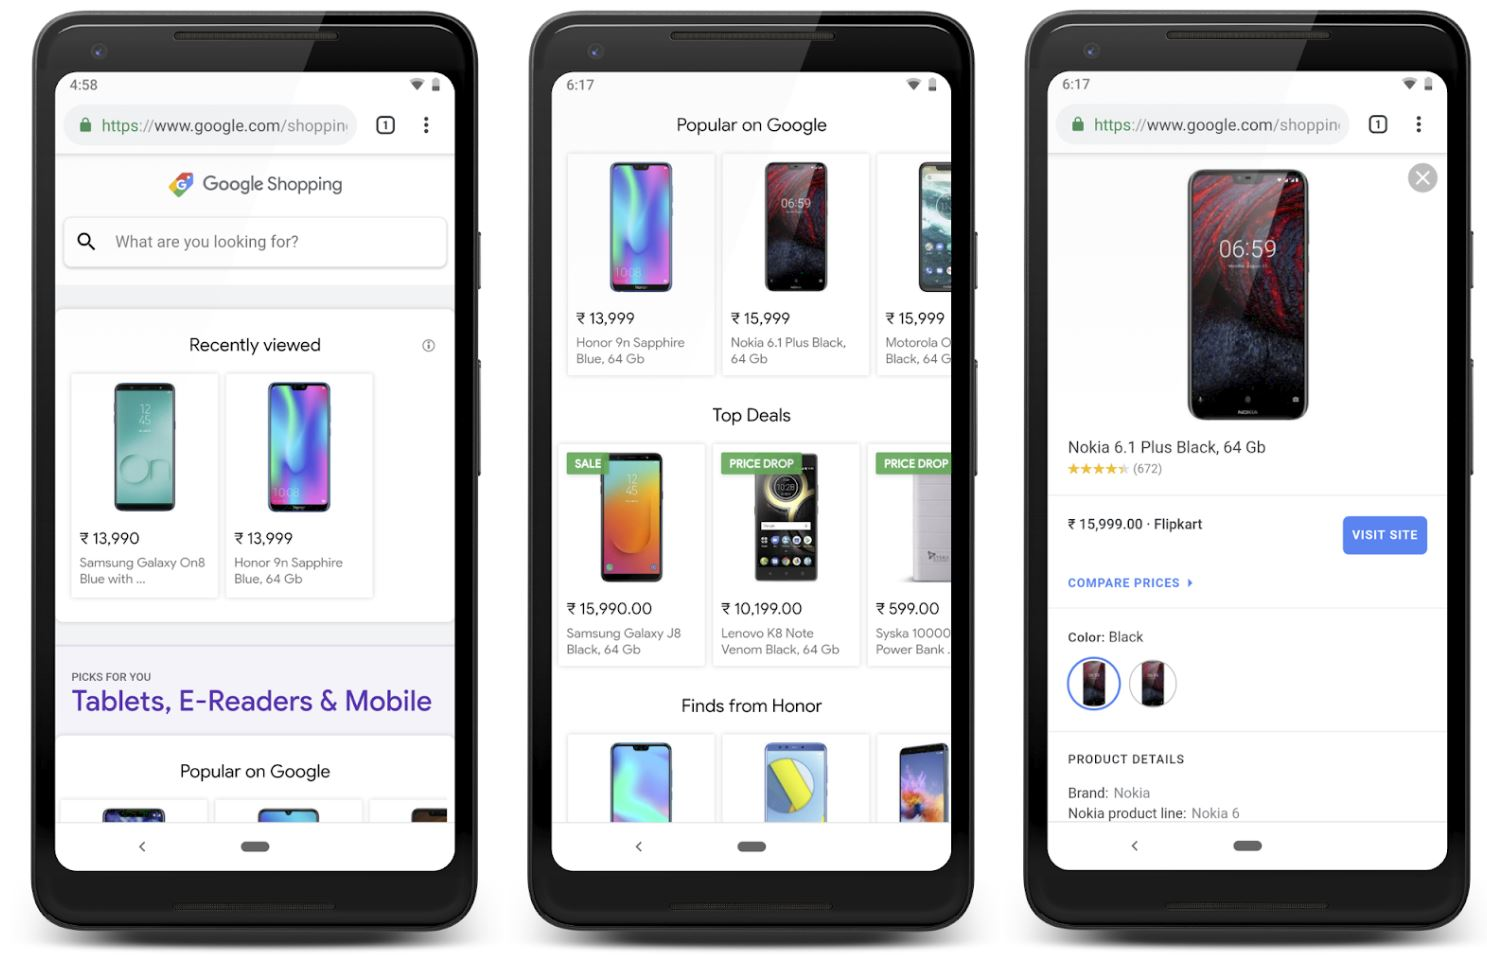 Google India launches 'Google Shopping', available via Search, Lens